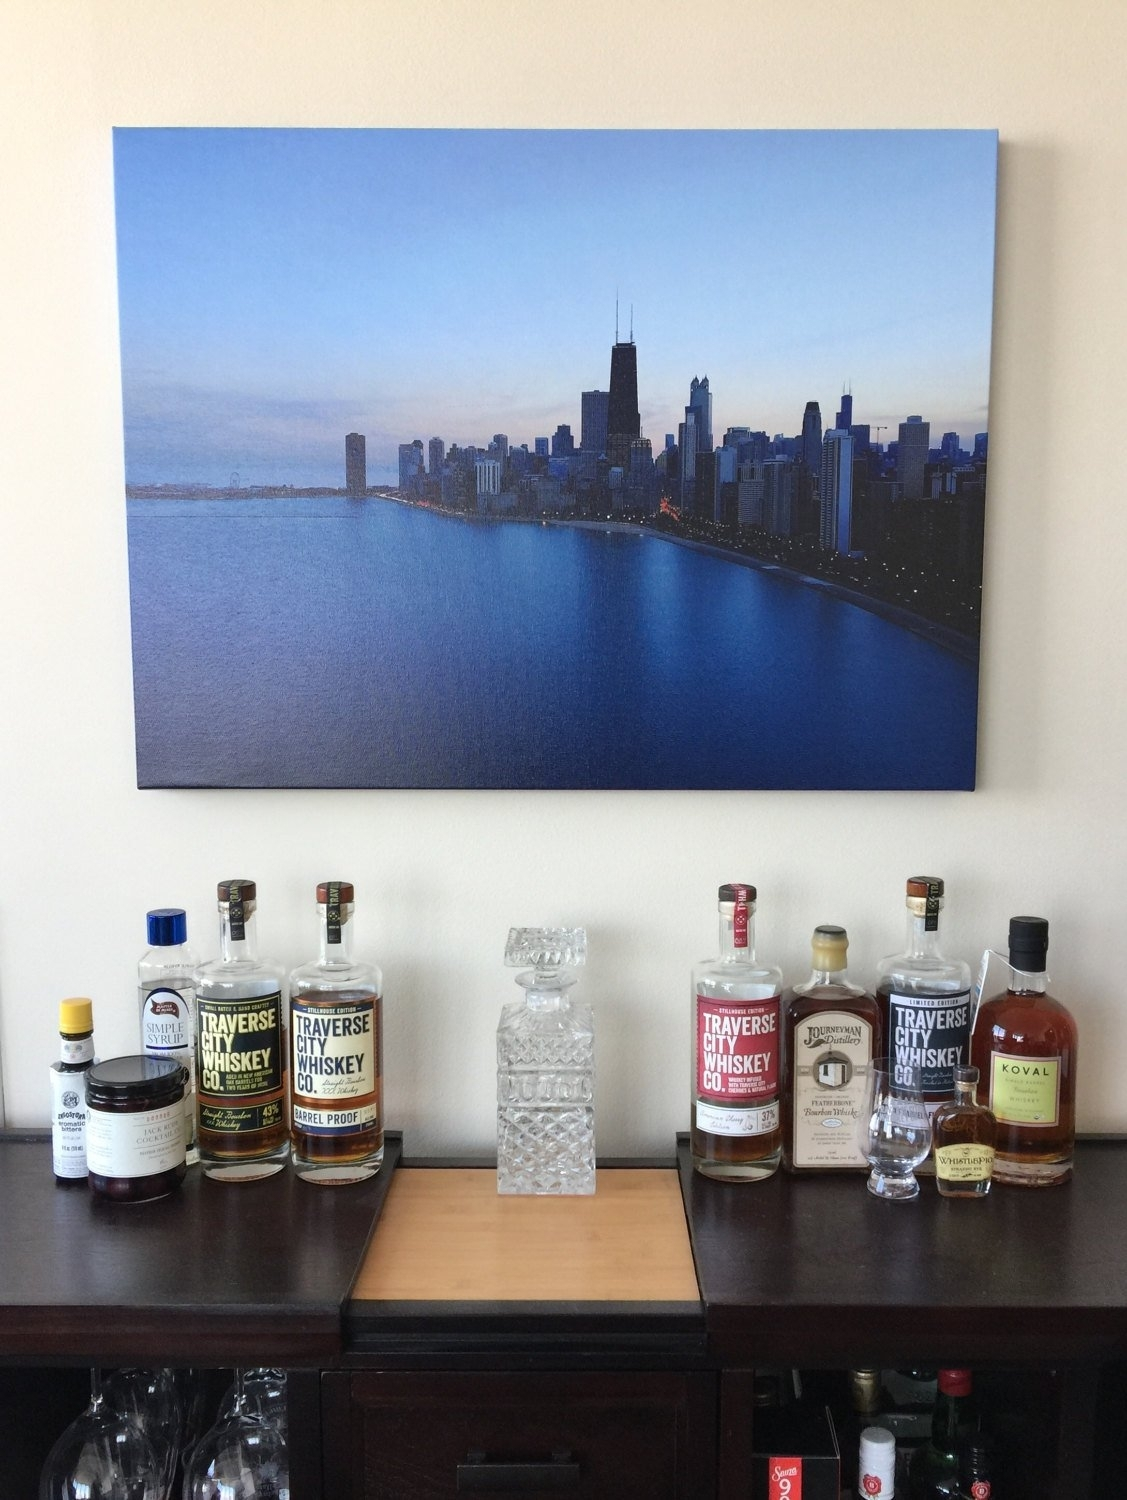 Sunsets In Chicago – Office And Wall Art, Urban Art, Chicago Art With Regard To Most Current Chicago Wall Art (View 14 of 15)